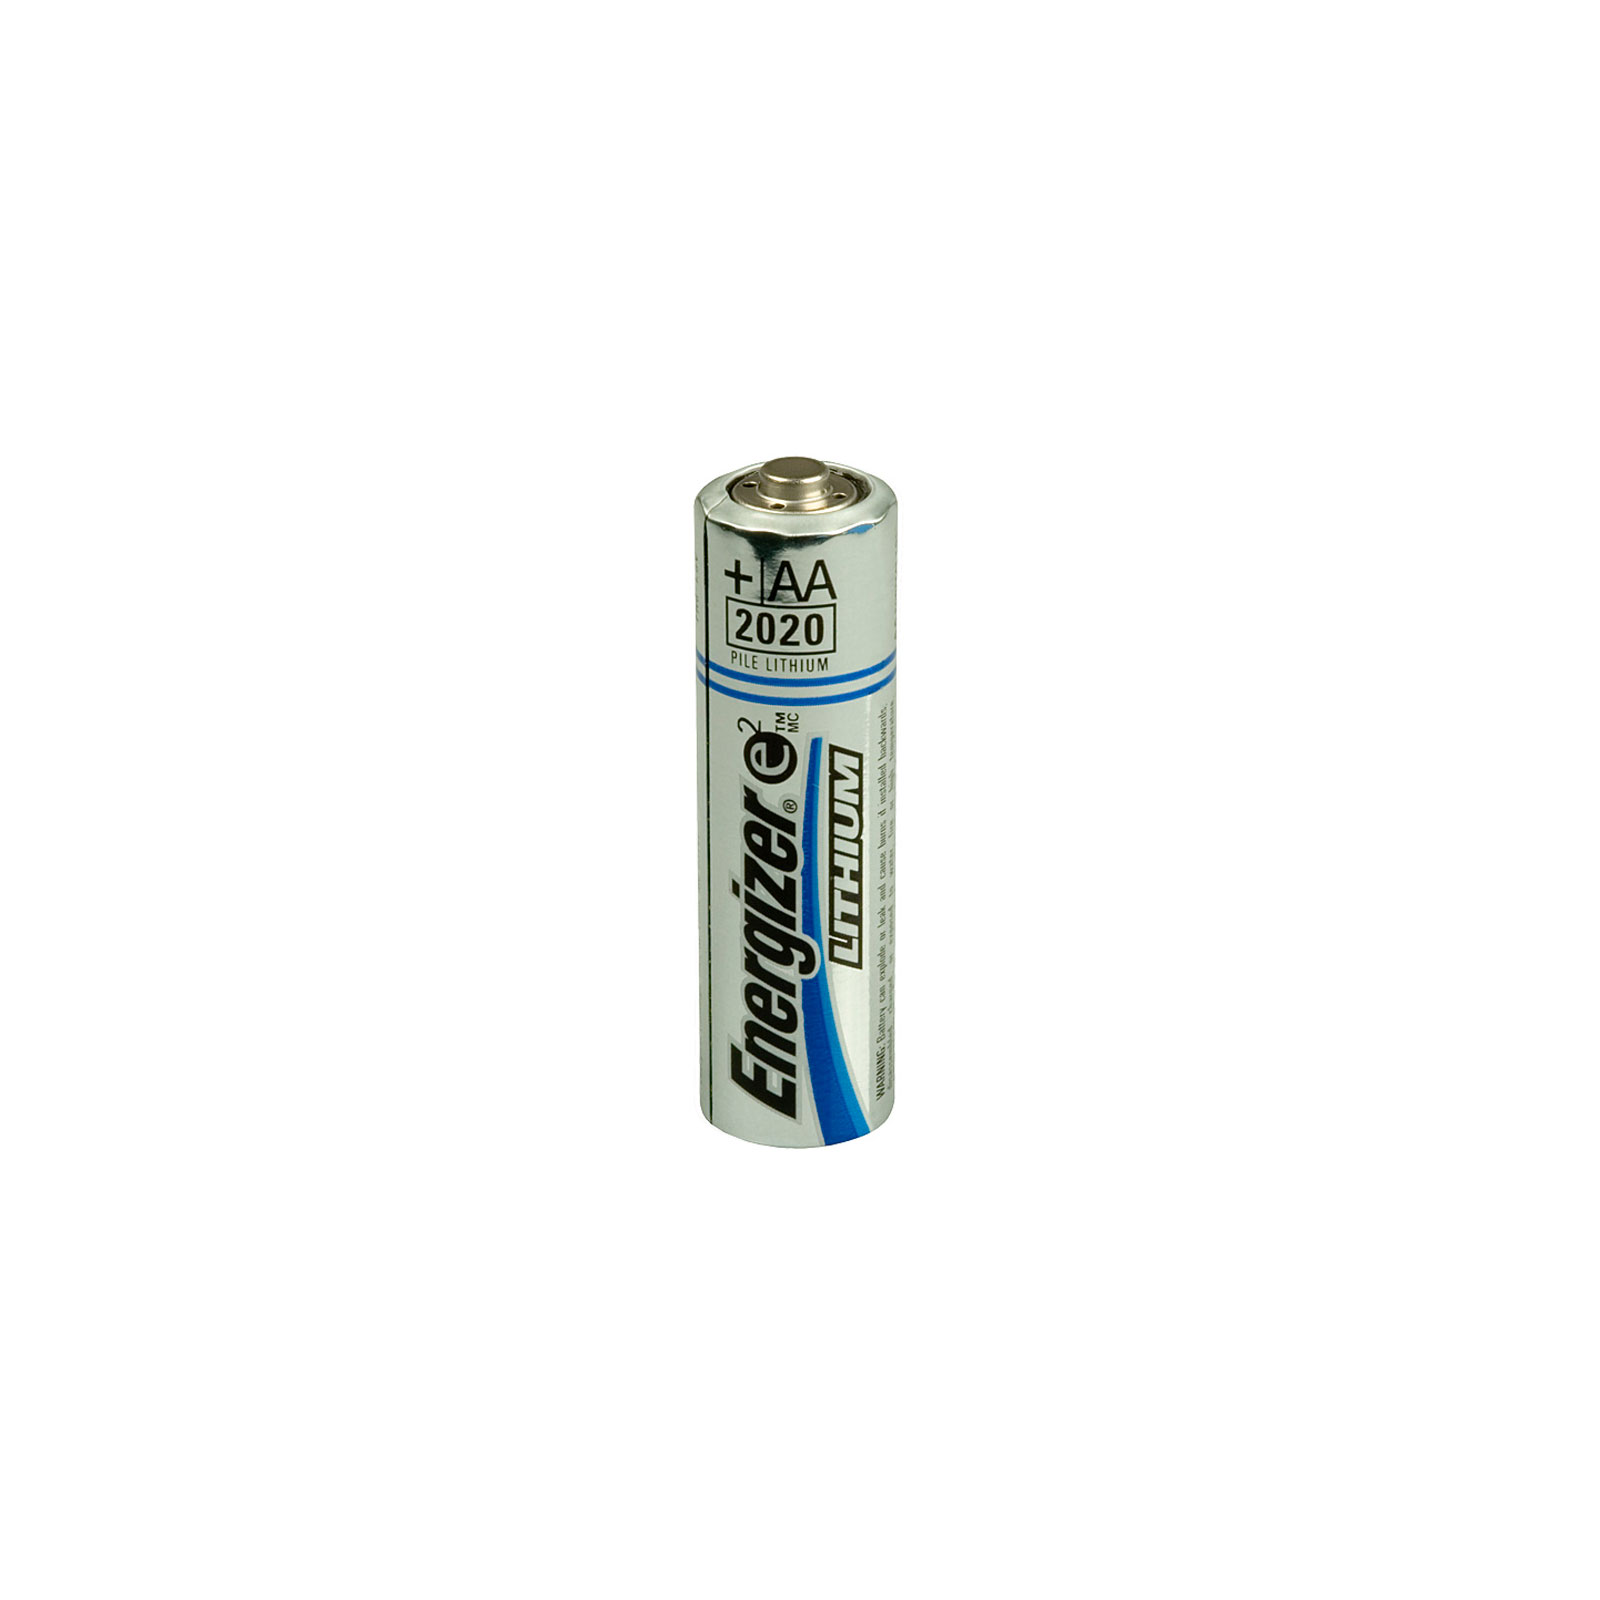 energizer e2 aa 1 5v lithium batteries l91 open box36 batteries fast usa ship ebay. Black Bedroom Furniture Sets. Home Design Ideas